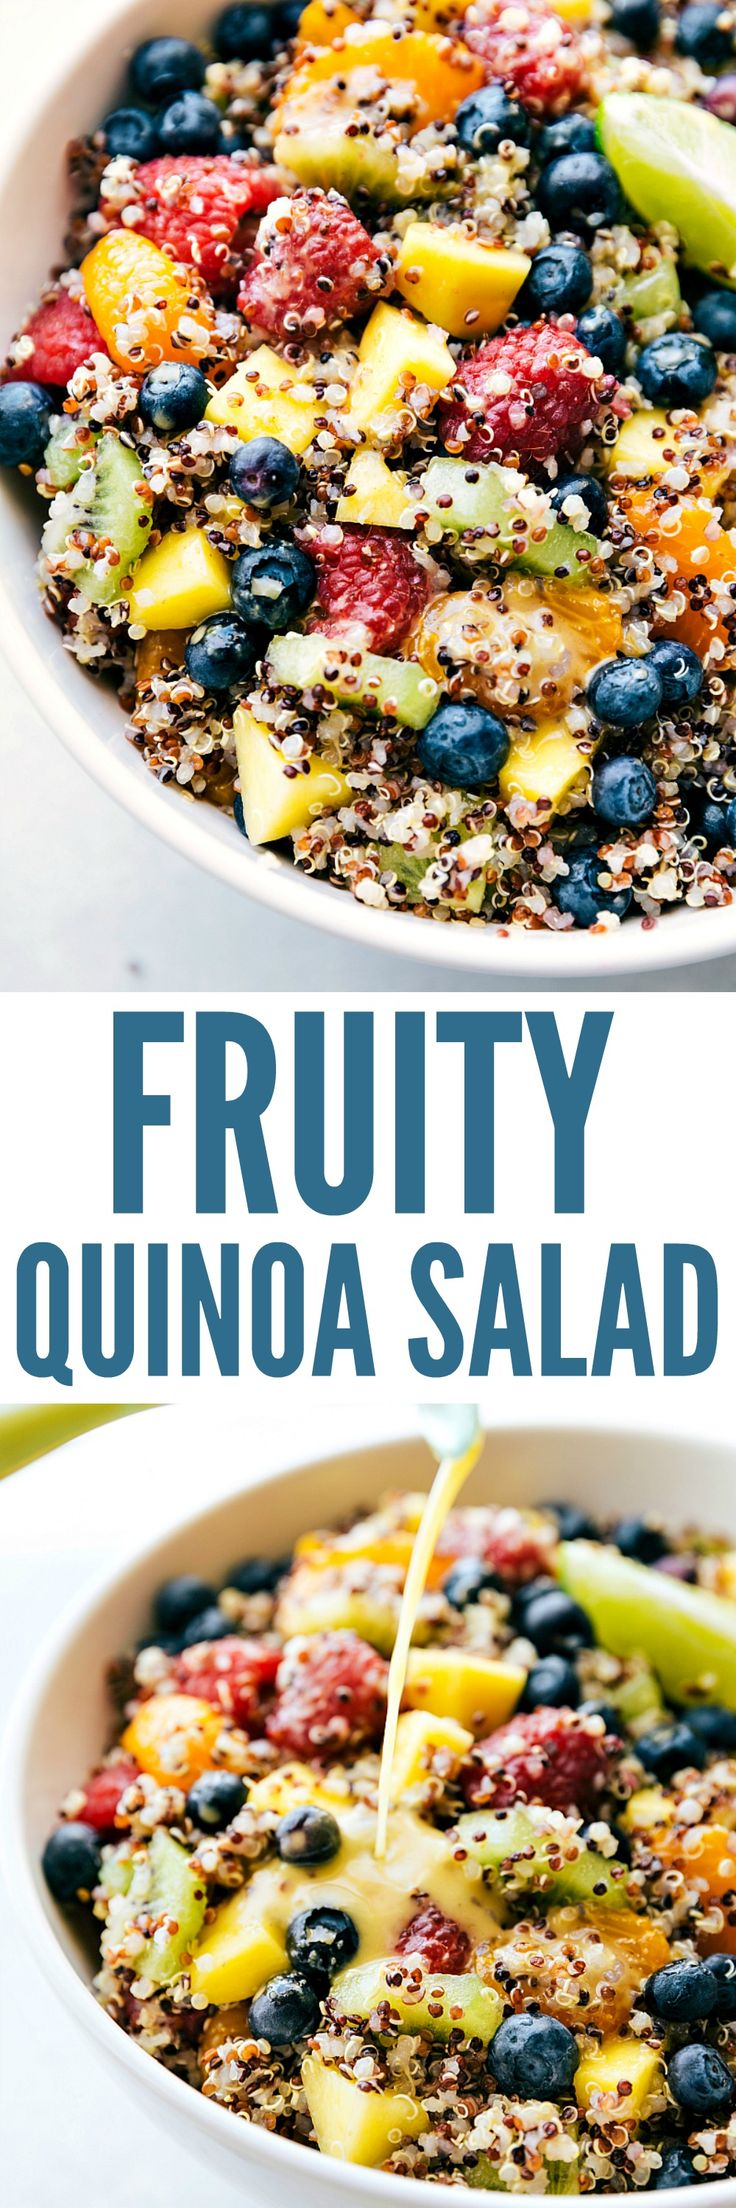 Fruity Quinoa Salad combines fresh fruit and quinoa with a tangy citrus dressing. This is pure bliss in a bowl and will keep you on track with your healthy eating!